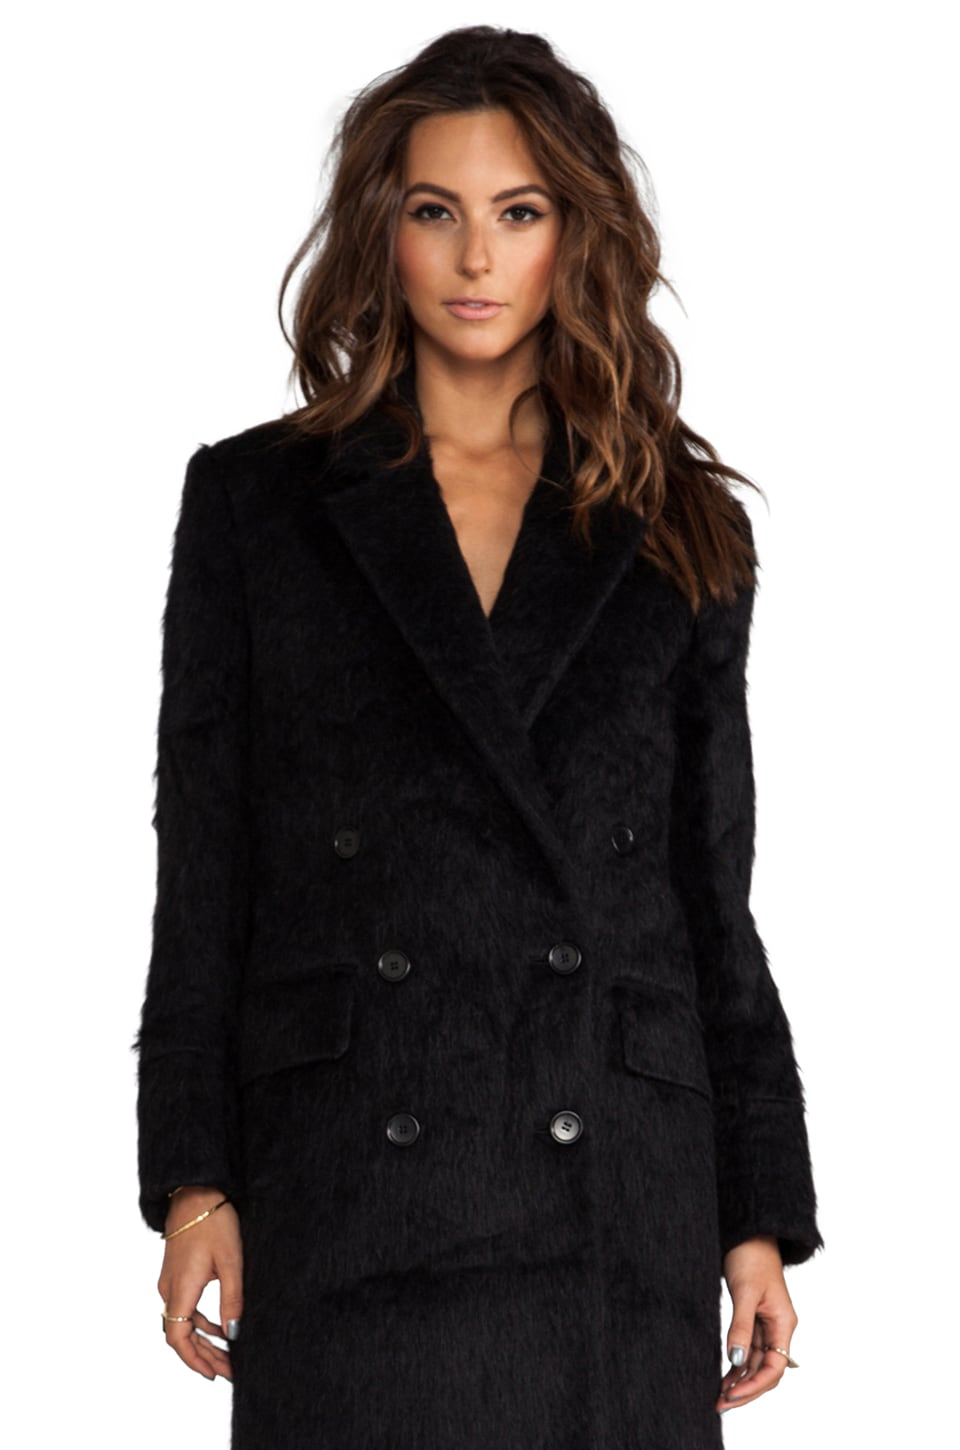 BLK DNM Coat 6 in Black